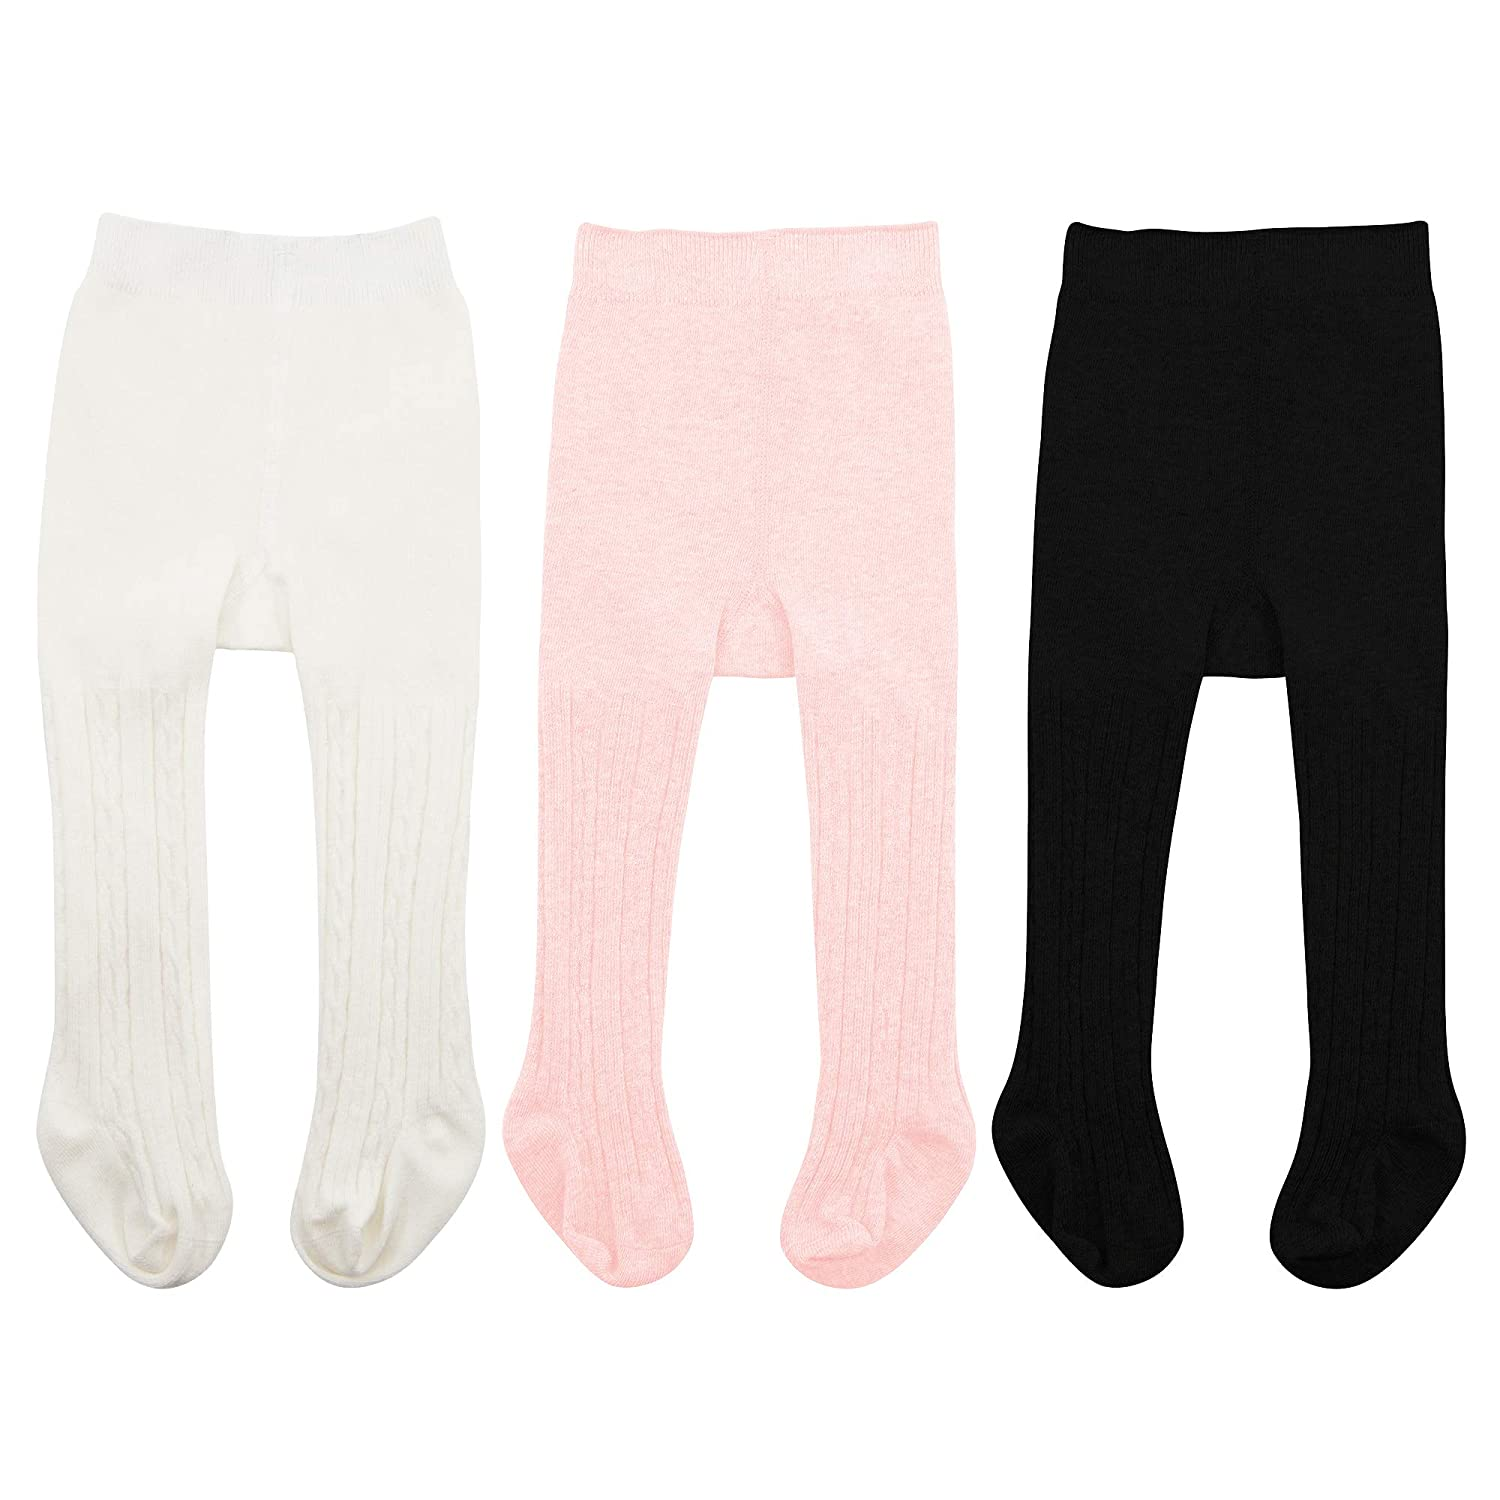 638f4cffeec40 Amazon.com: Zando Baby Girls Tights Soft Cable Knit Cotton Leggings For Baby  Big Girls Toddler Seamless Socks Infant Pants Stockings: Clothing